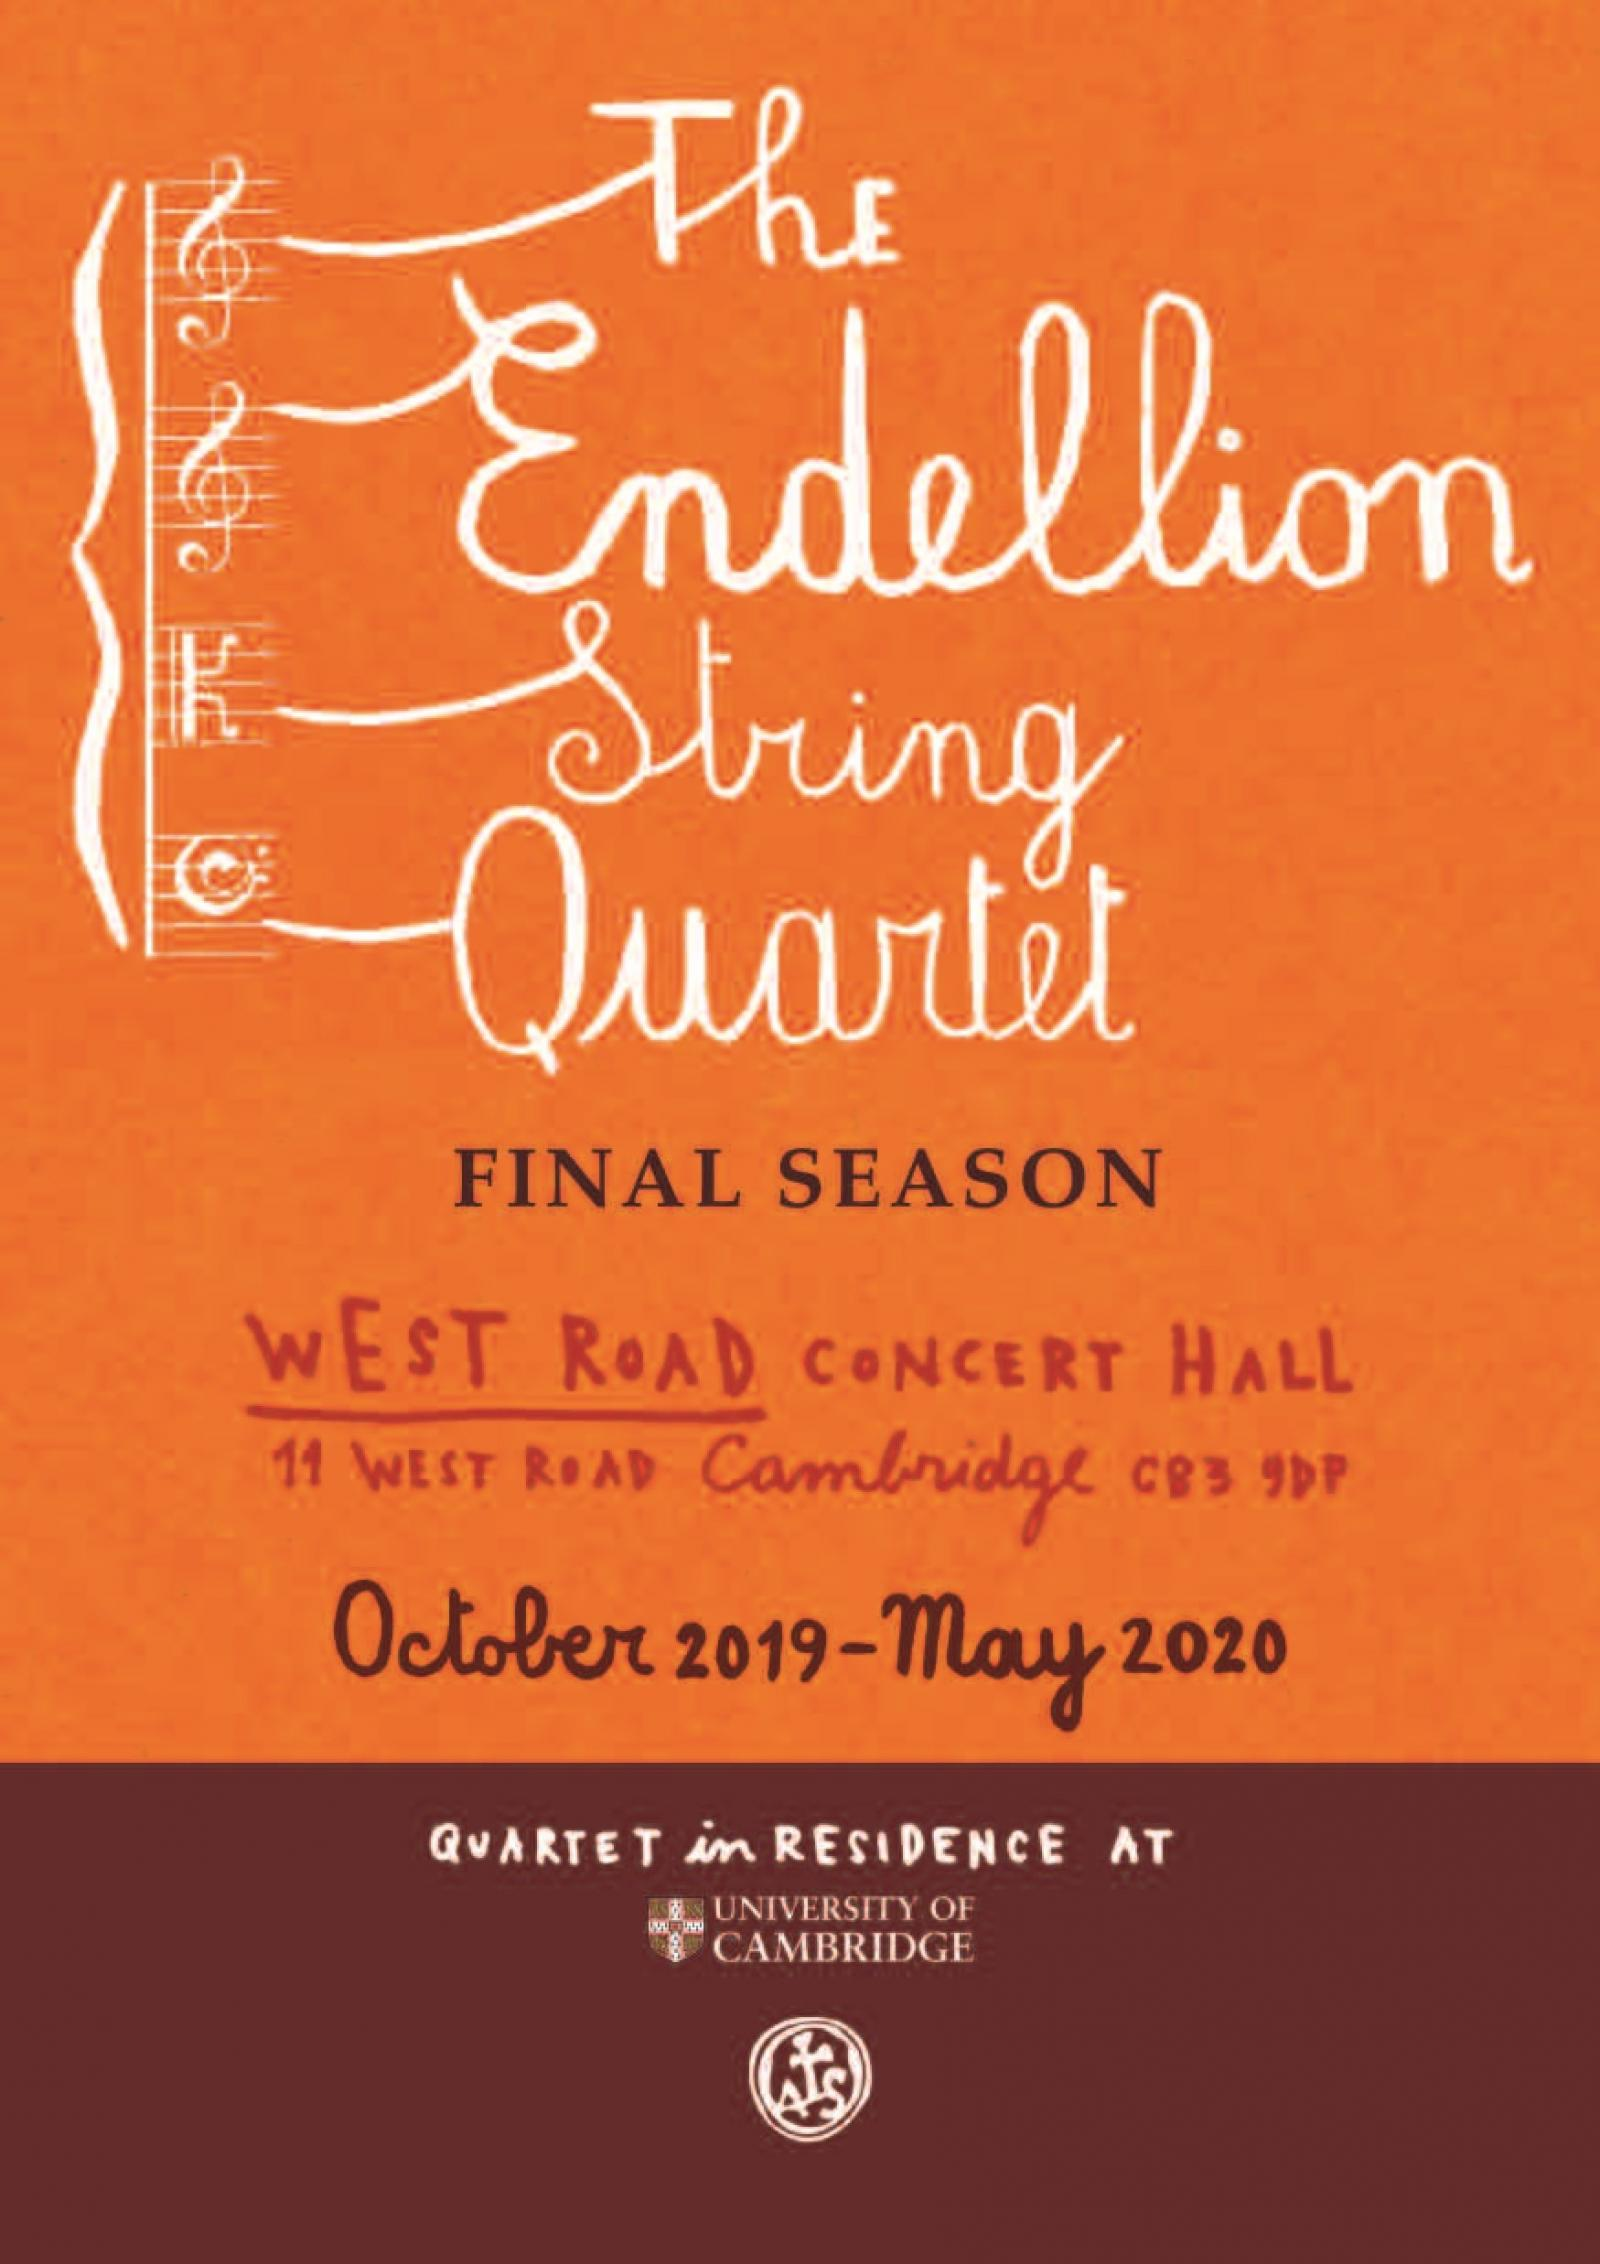 ENDELLION STRING QUARTET - 23/10/19 | Cambridge Live